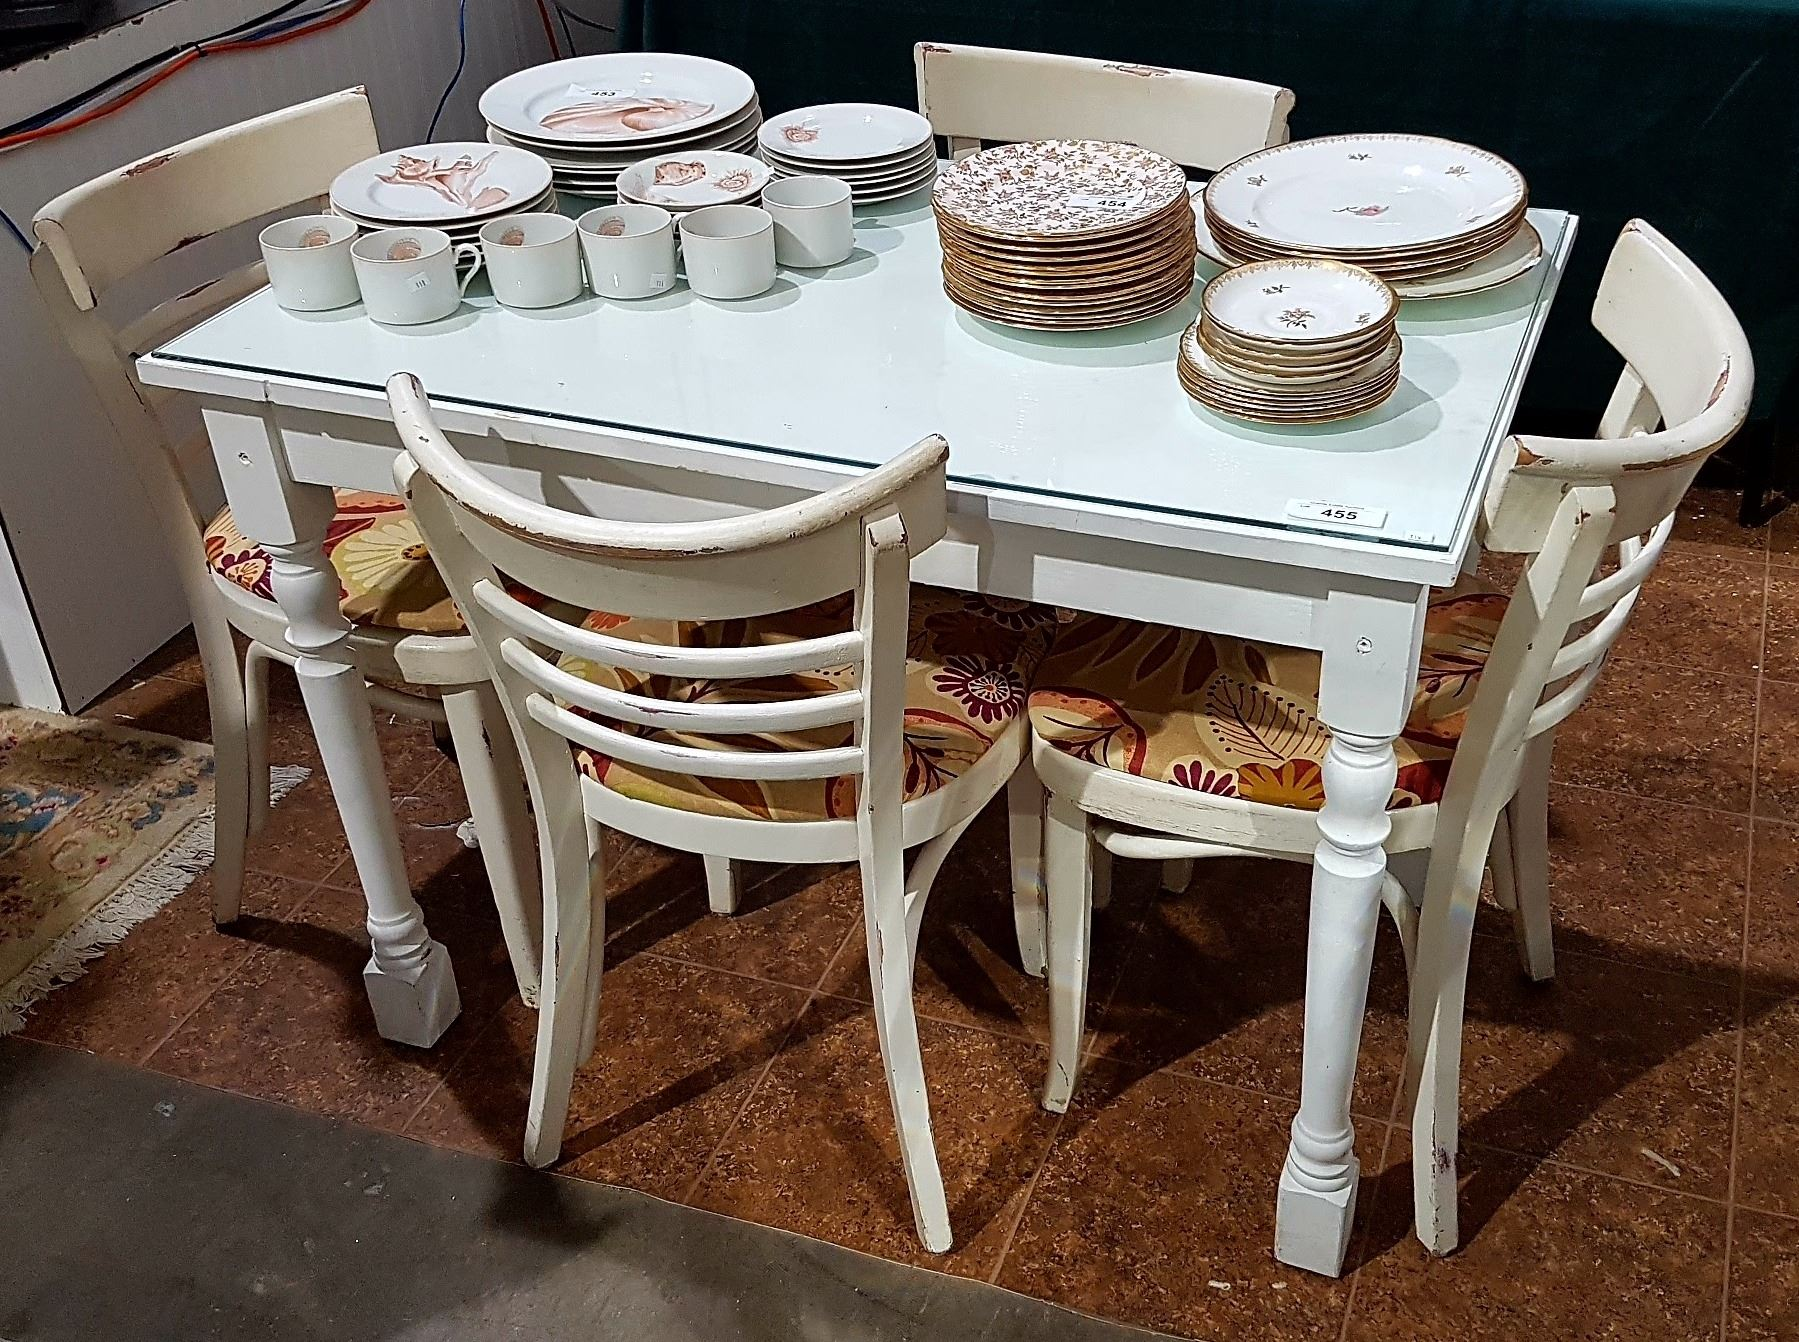 small bistro table 4 chairs grande estate auction. Black Bedroom Furniture Sets. Home Design Ideas